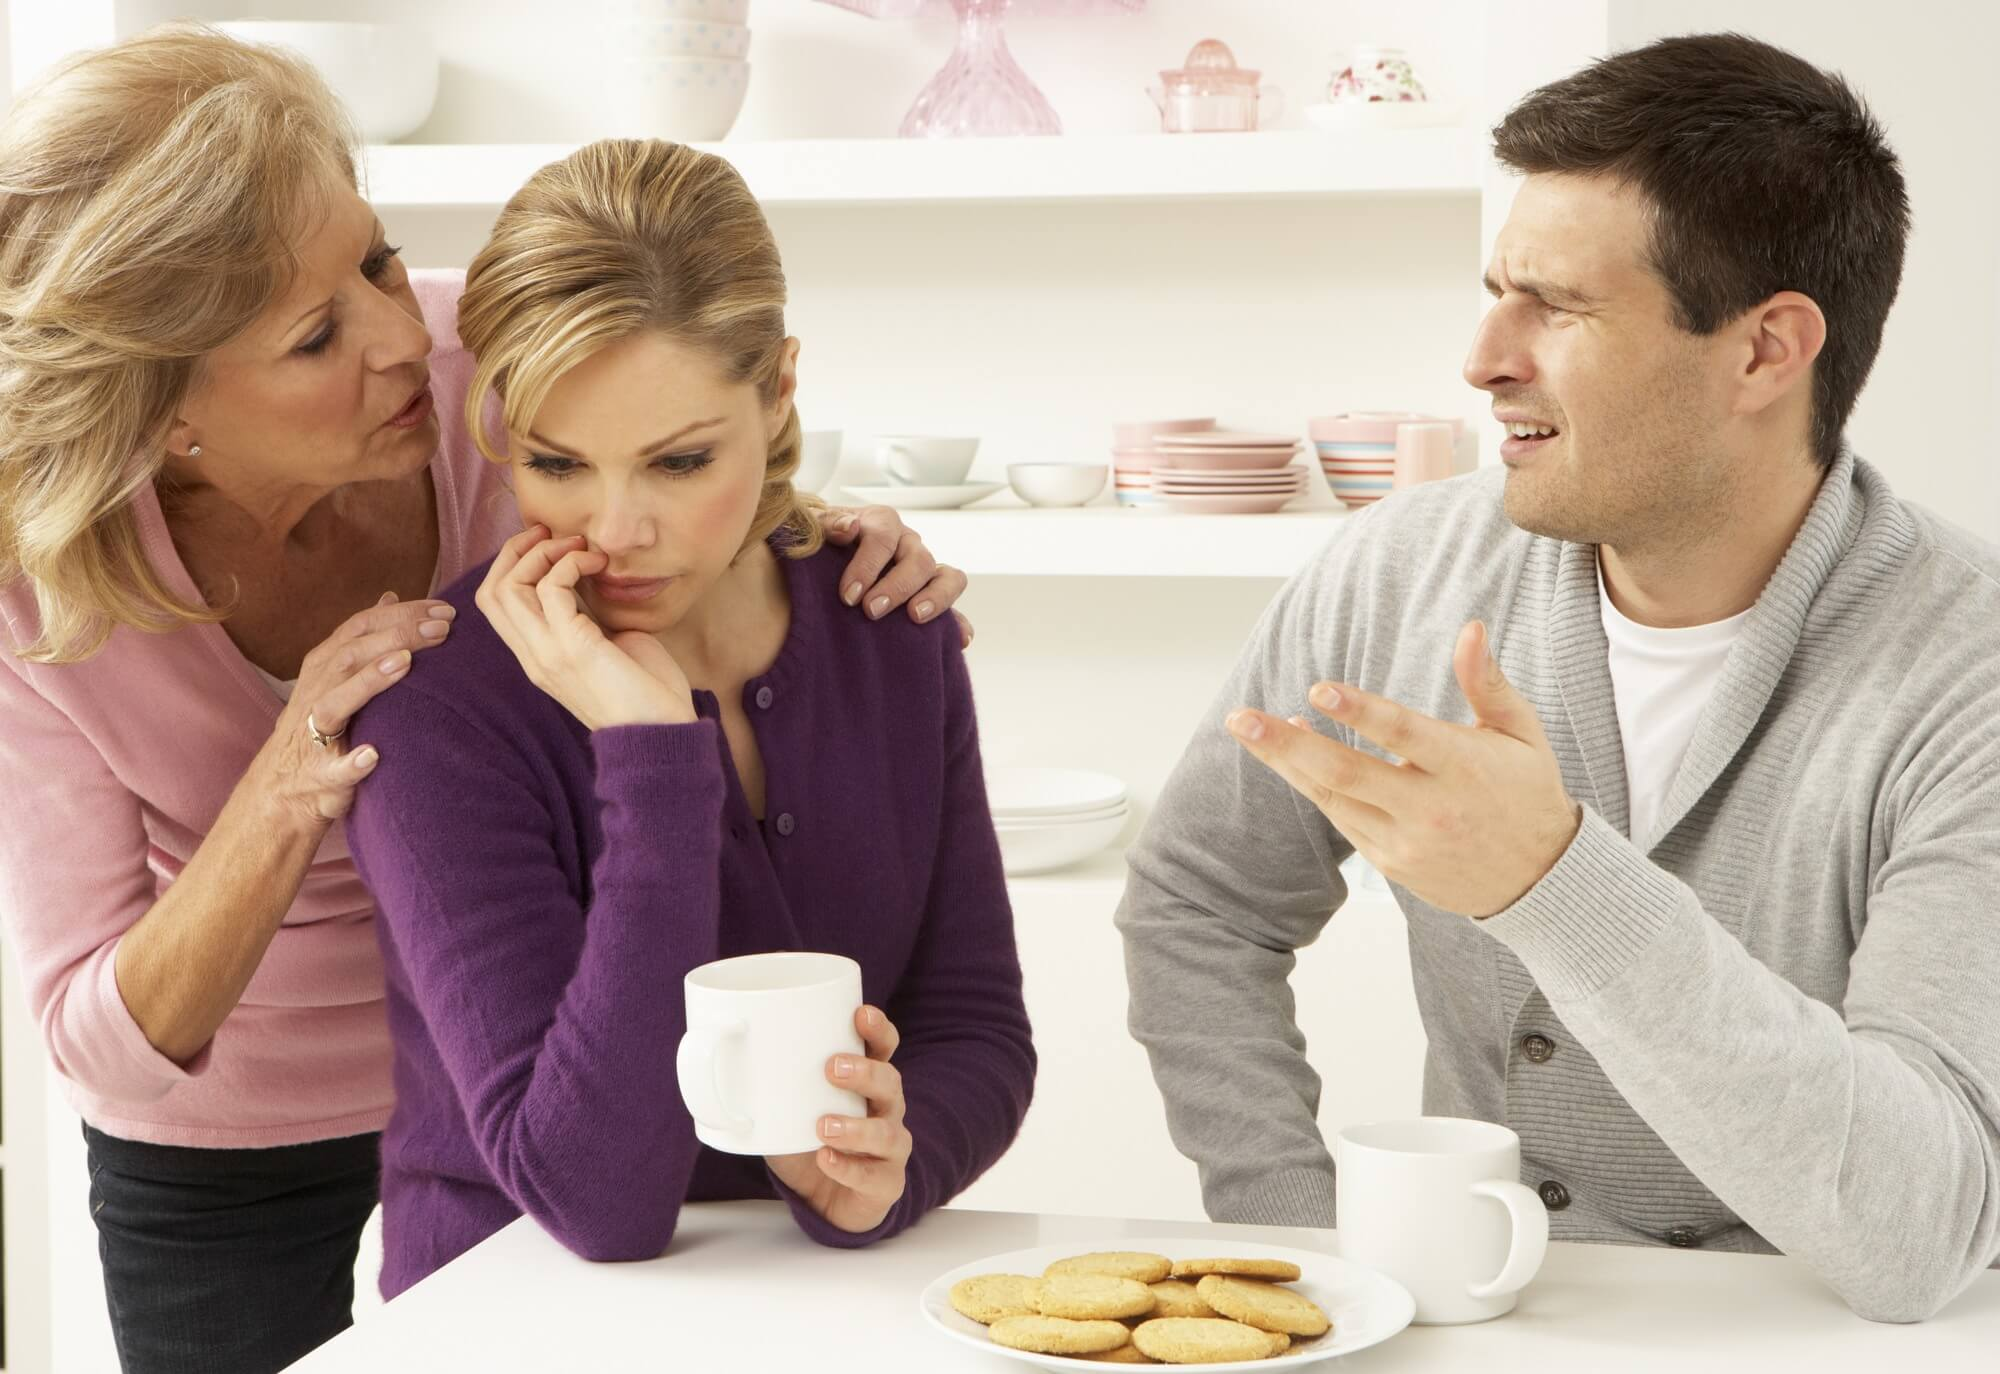 Mother In Law Causing Problems In Marriage? Here's What To Do